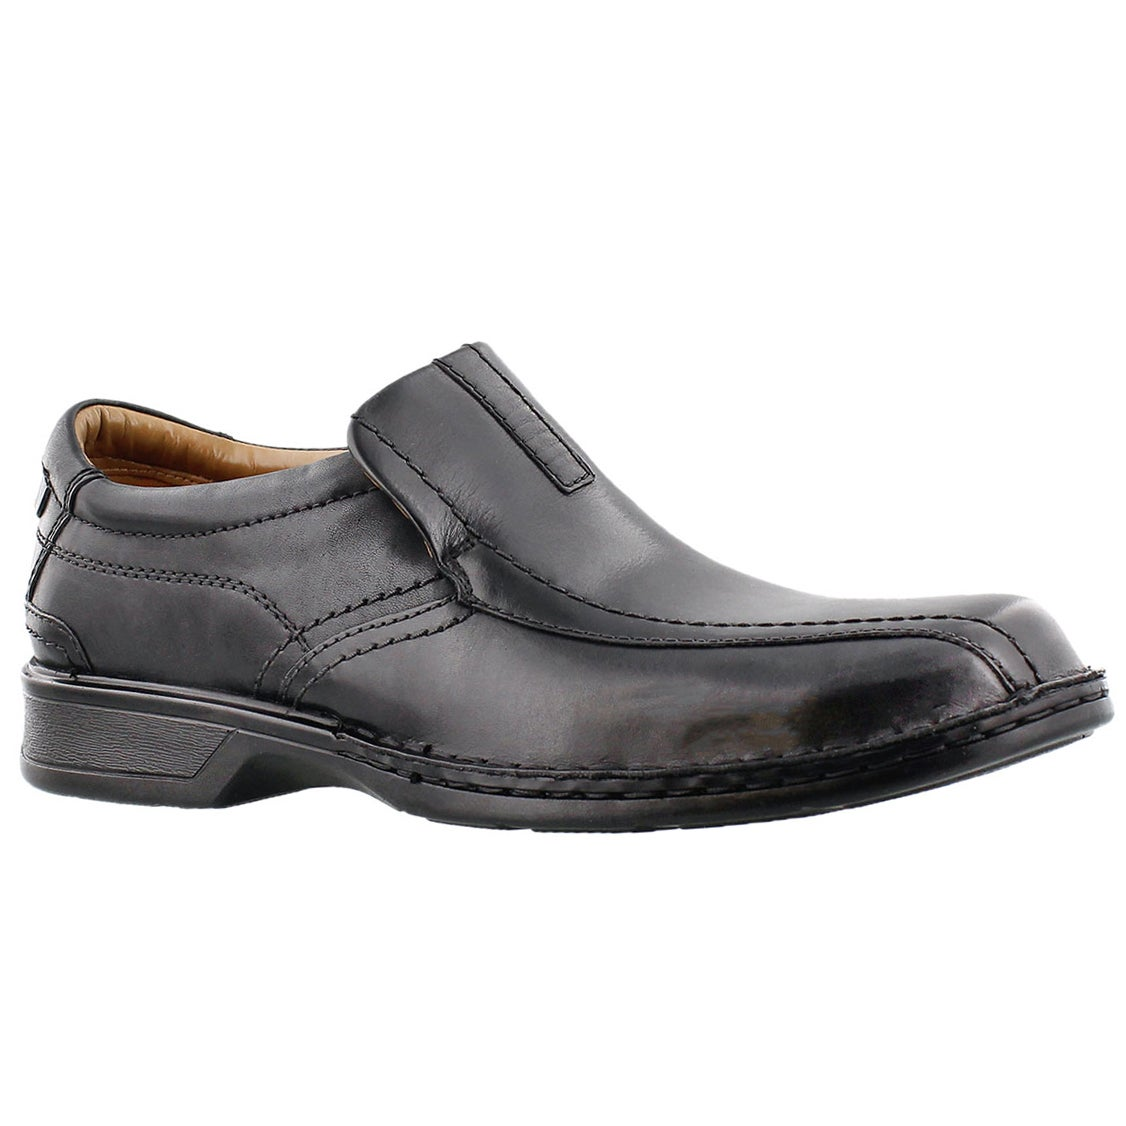 Mns Escalade Step blk slip on dress shoe